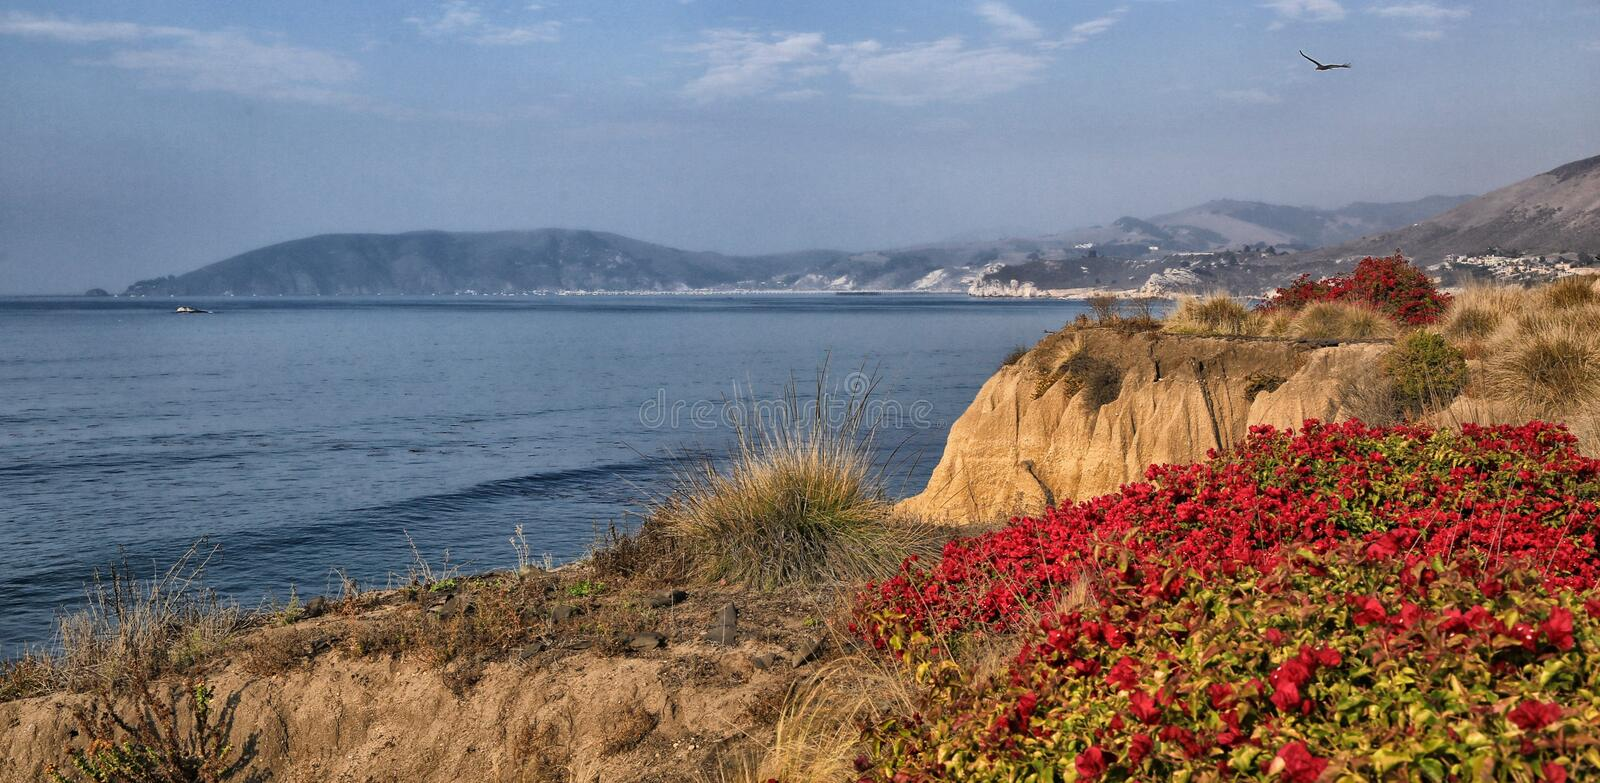 Pismo Beach seaside cliffs royalty free stock images